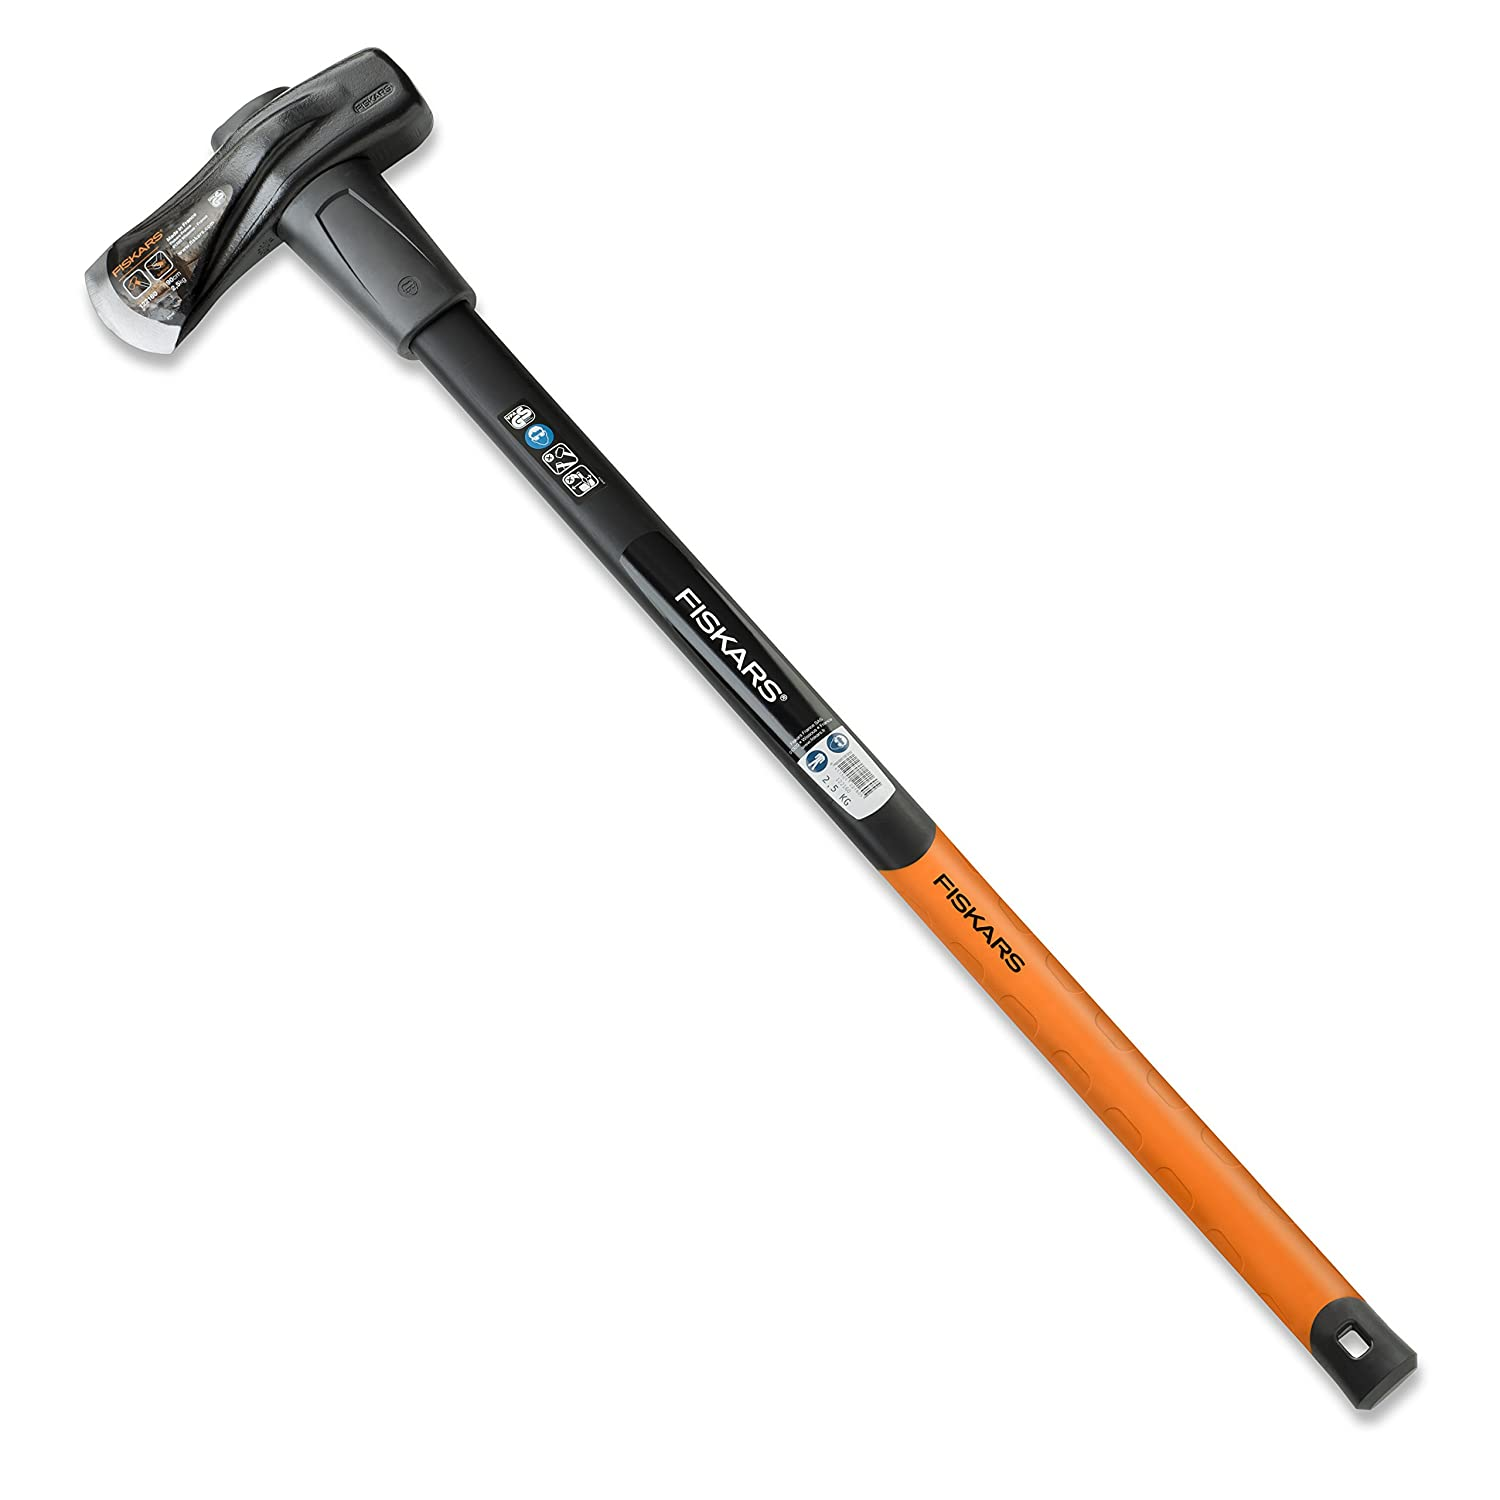 Fiskars Splitting Axe X37, 3 kg with anti-shock protection (forged carbon steel), 2 in 1: axe and hammer, Tempered steel blade/Resistant fibreglass handle, Black/Orange, 1001704